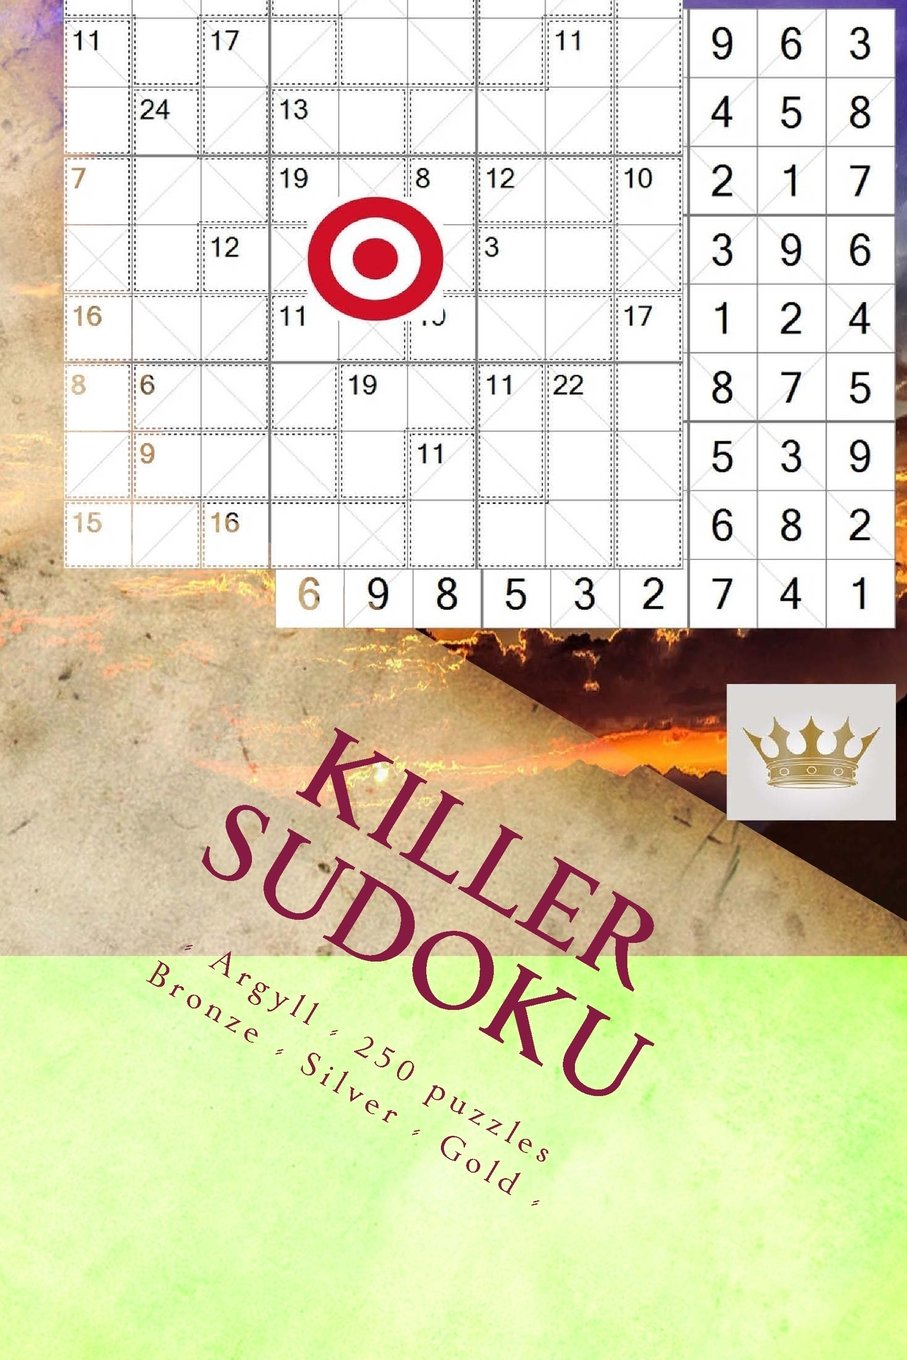 Download Killer Sudoku - Argyll - 250 puzzles Bronze - Silver - Gold - Vol. 171: 9 x 9 PITSTOP. Enjoy this excellent Sudoku. PDF